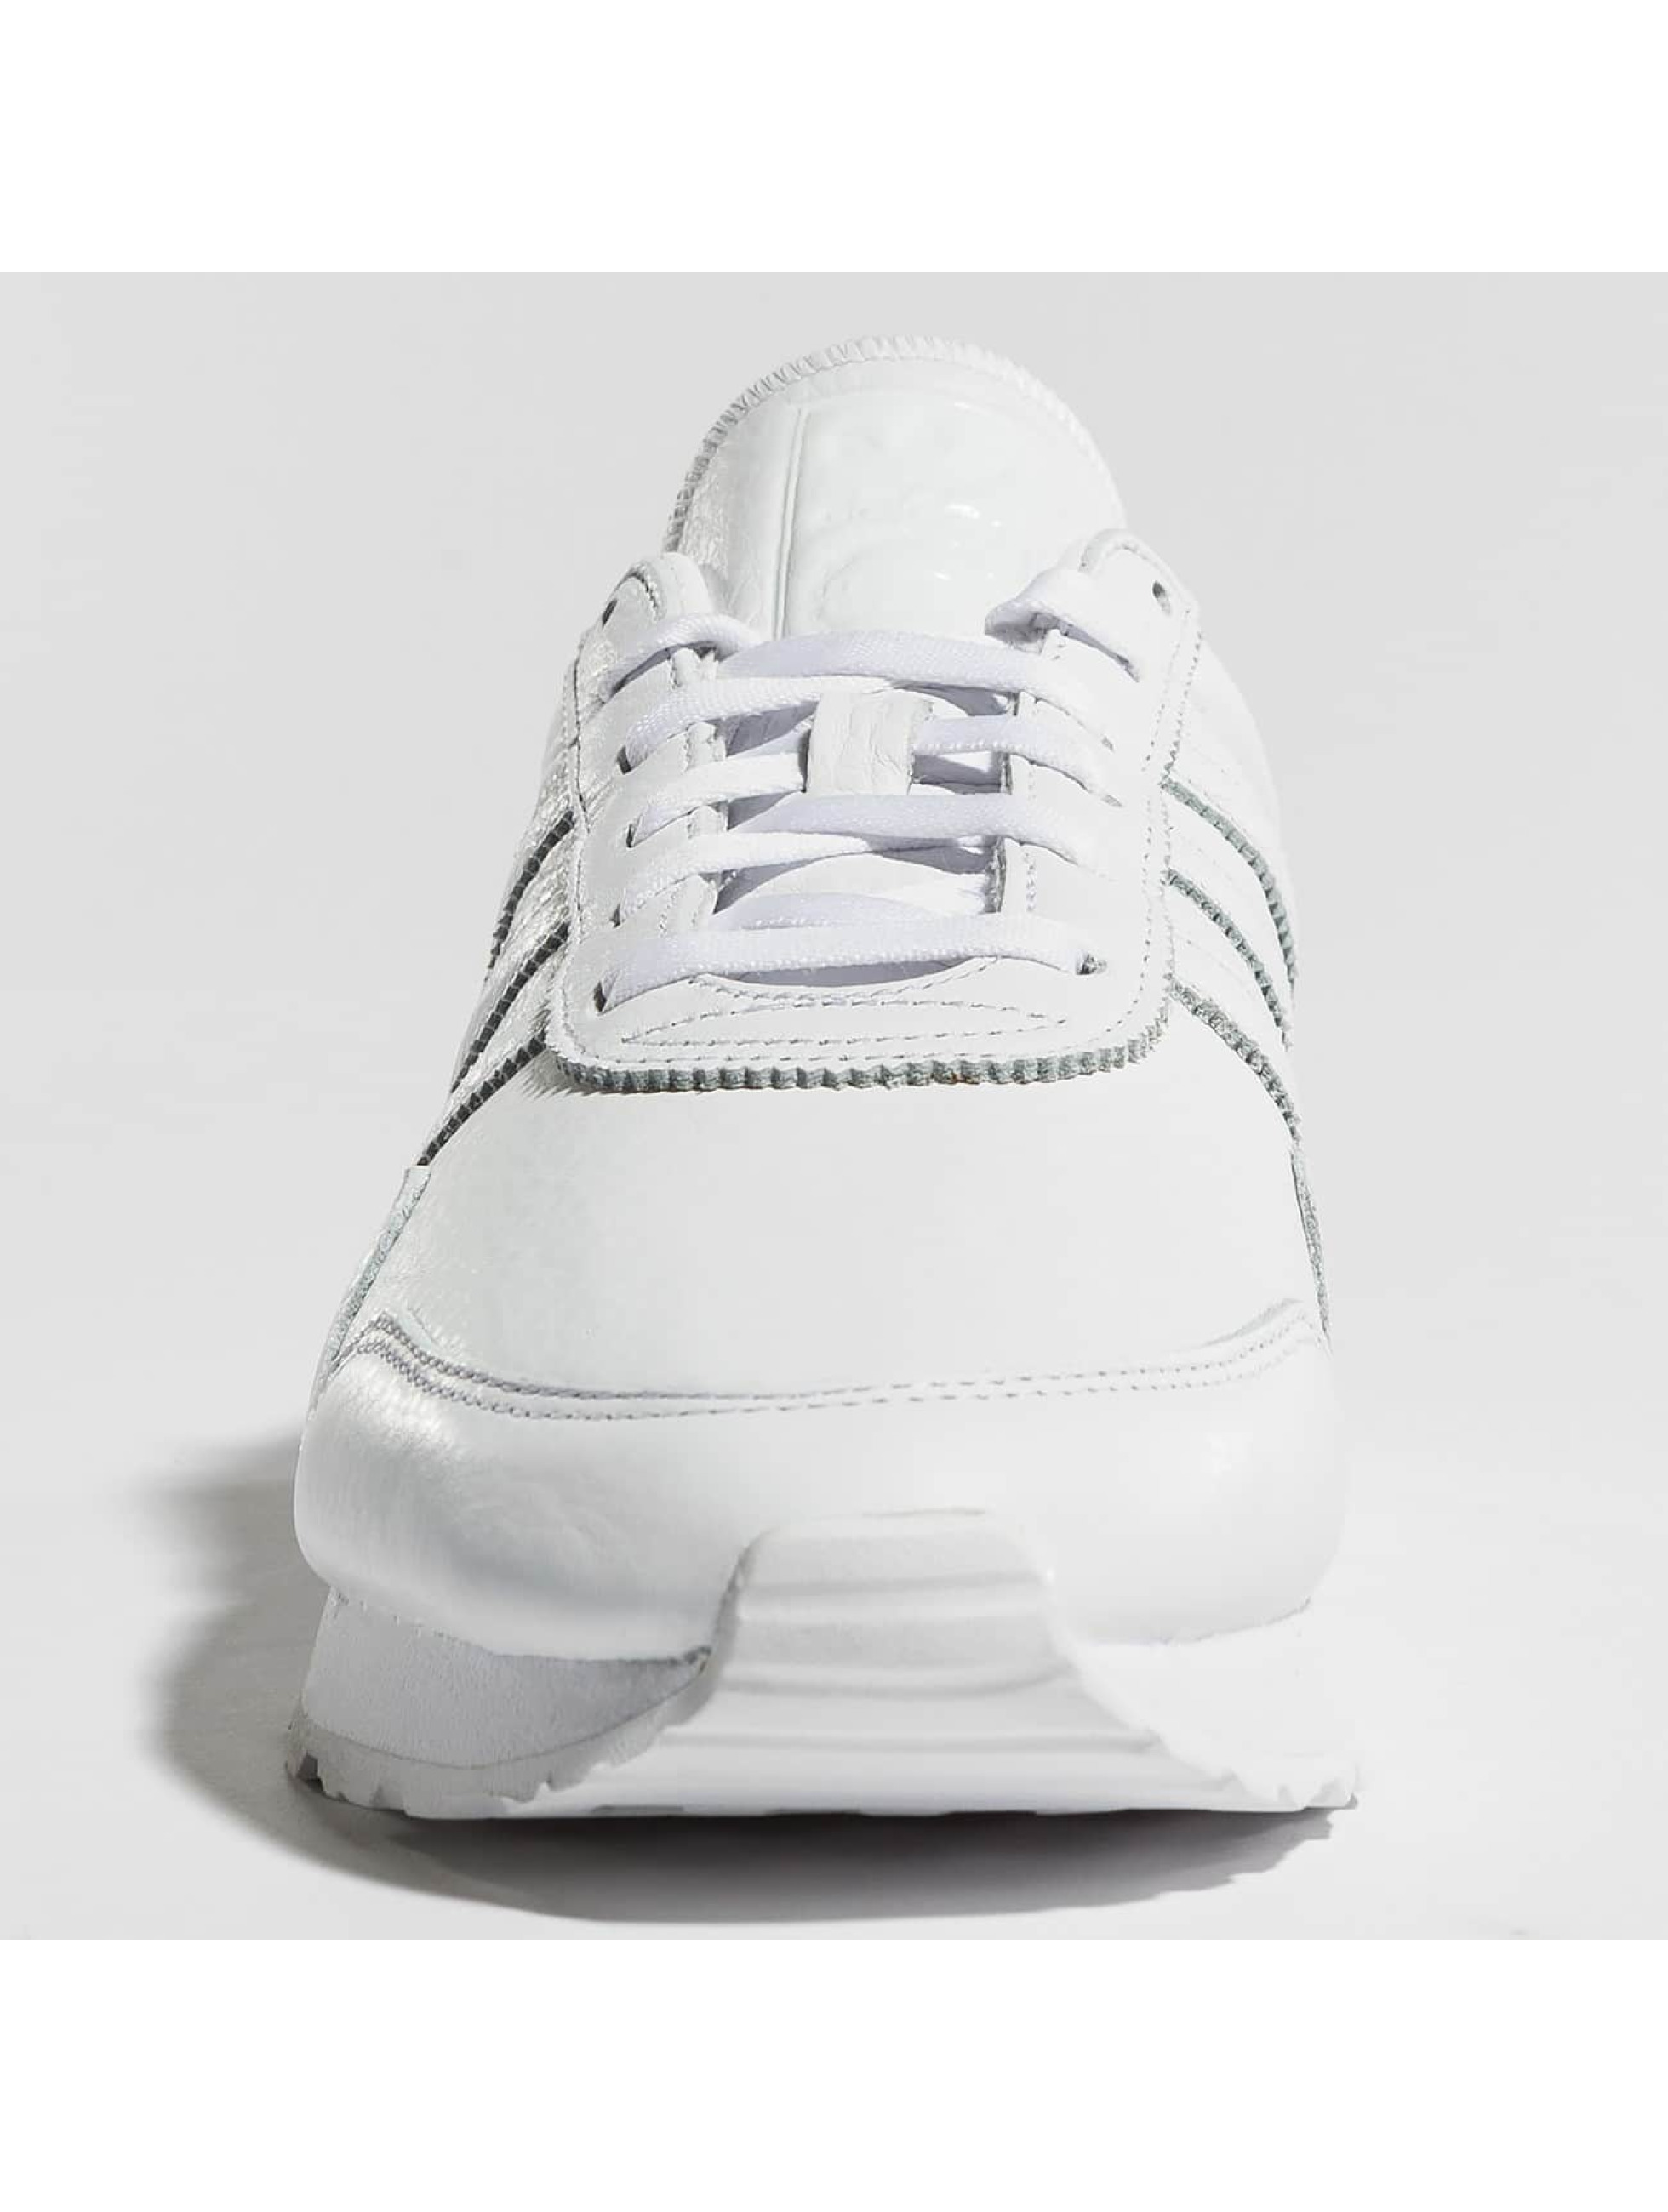 adidas Zapatillas de deporte Haven blanco